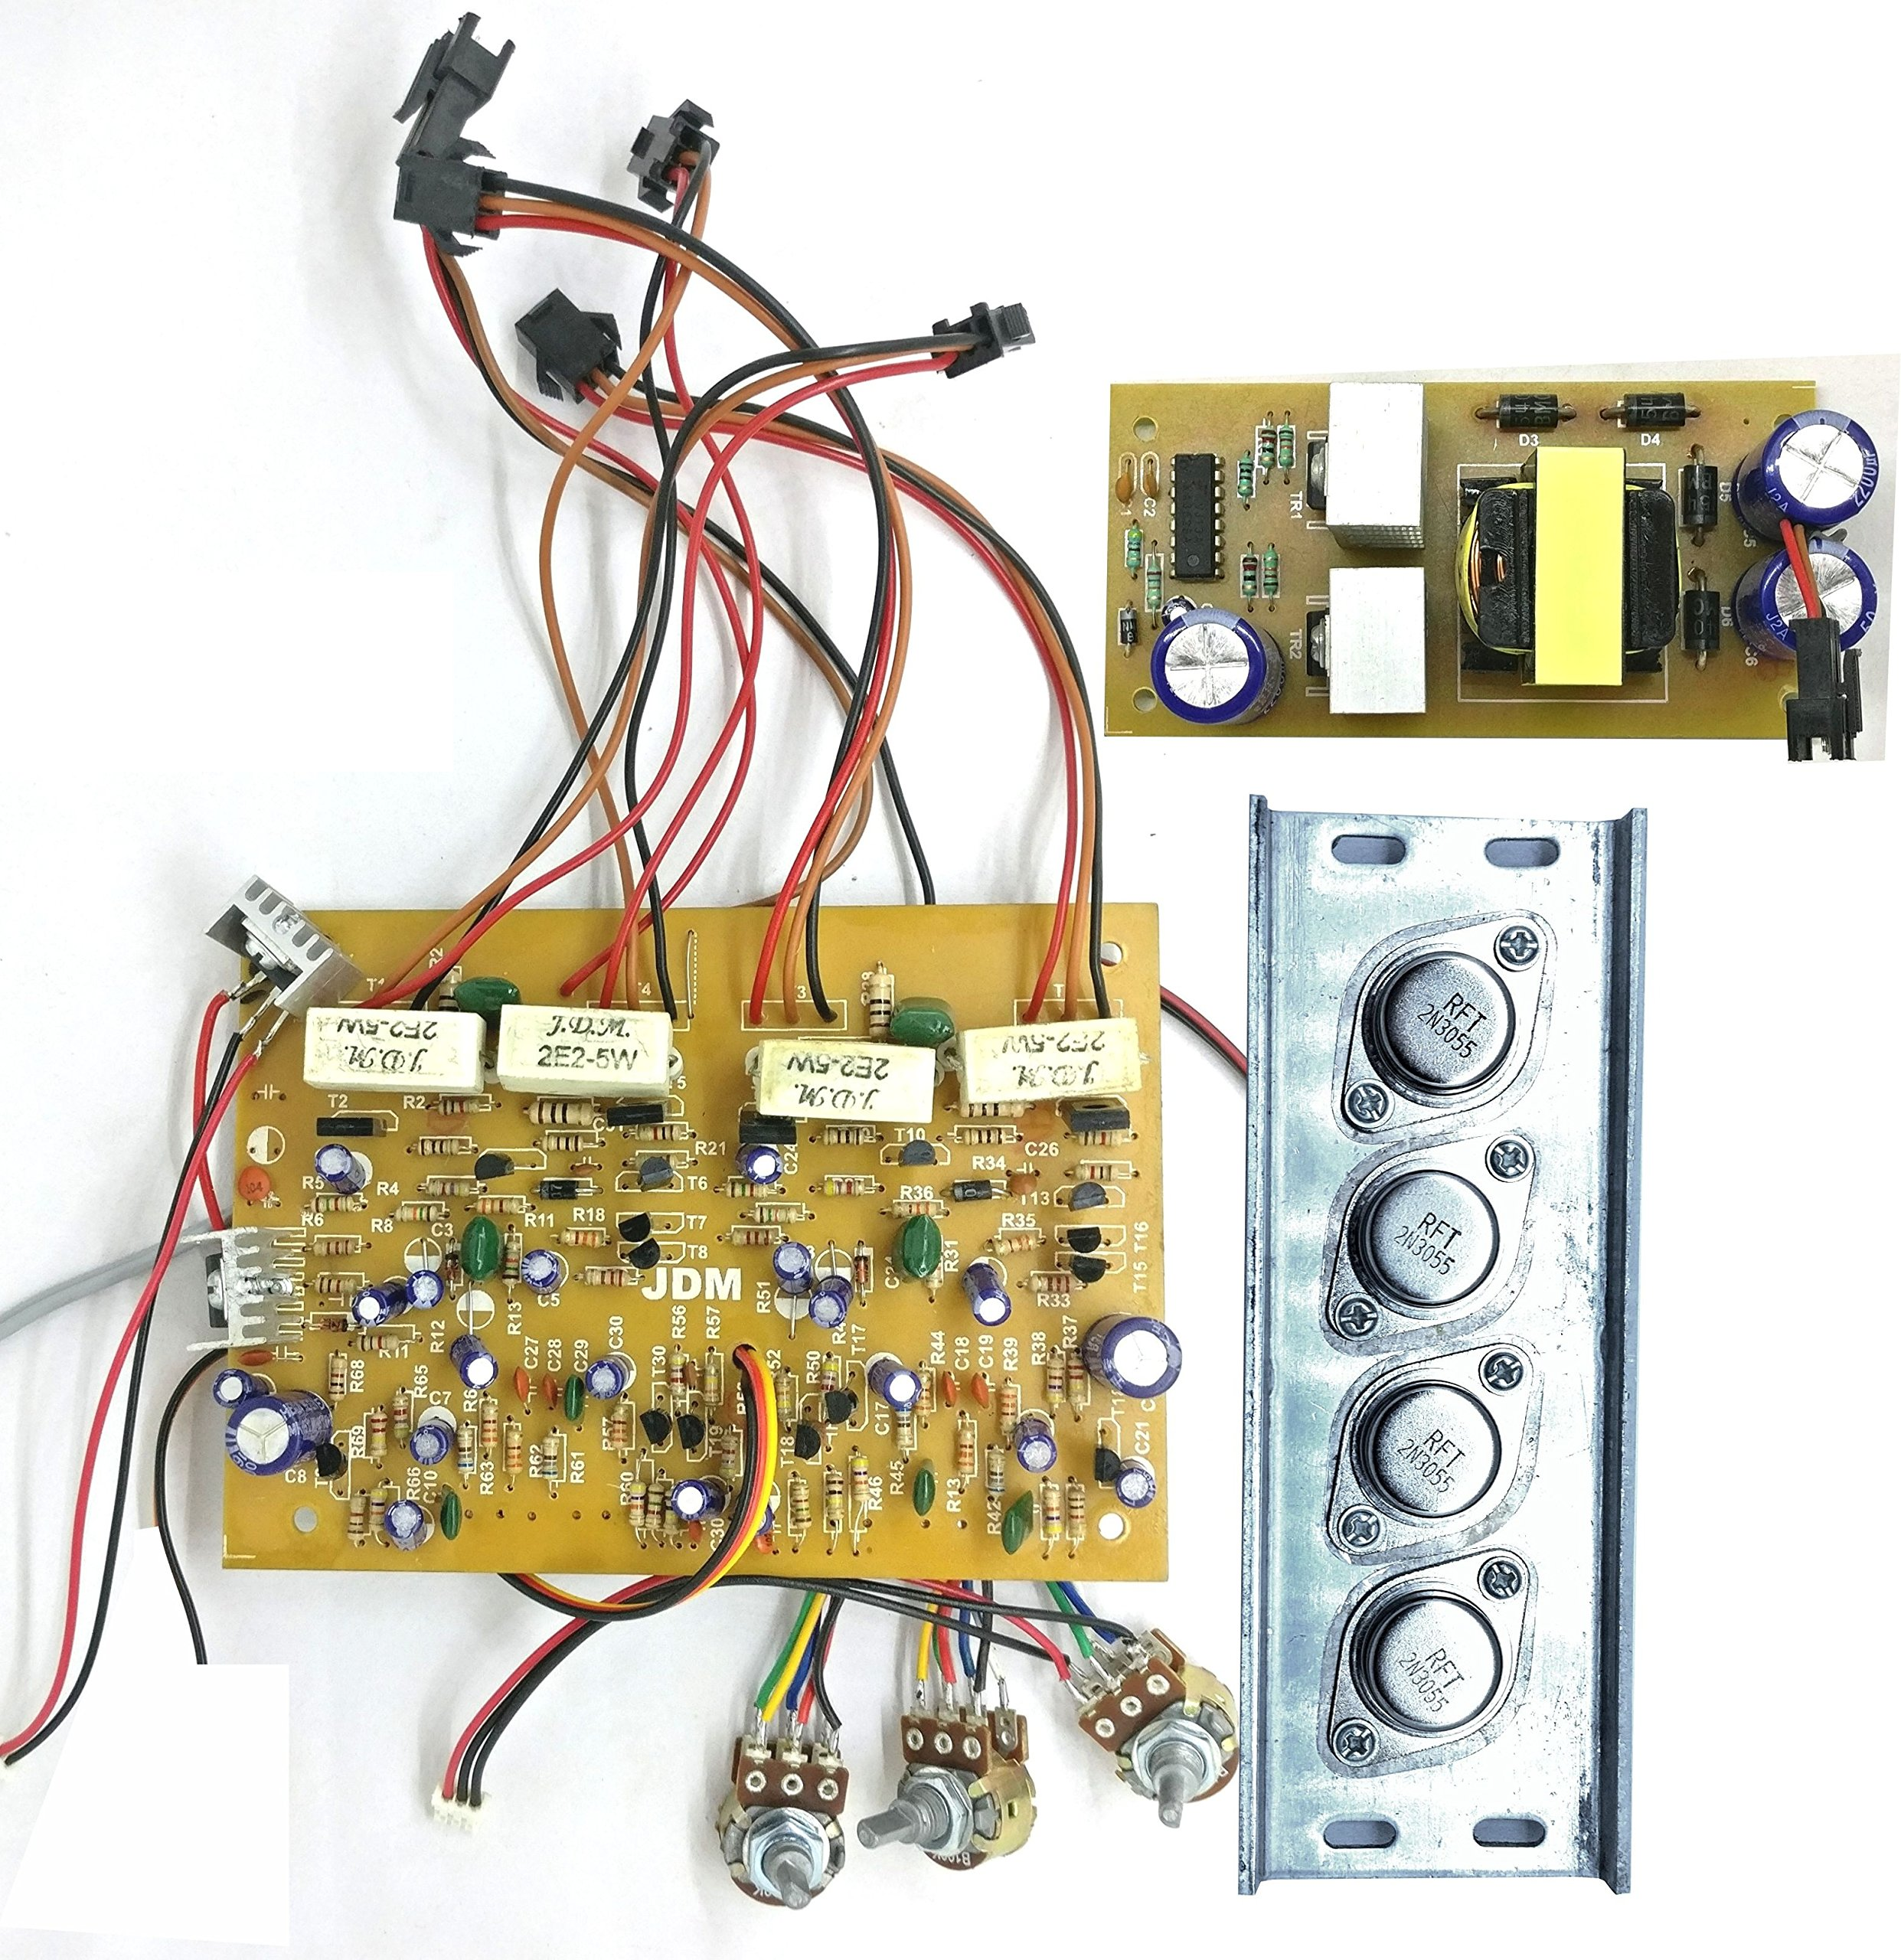 TECH AND TRADE 300W DIY 2n3055 Transistor Based Stereo Audio Amplifier Board (Better than 4440 IC)